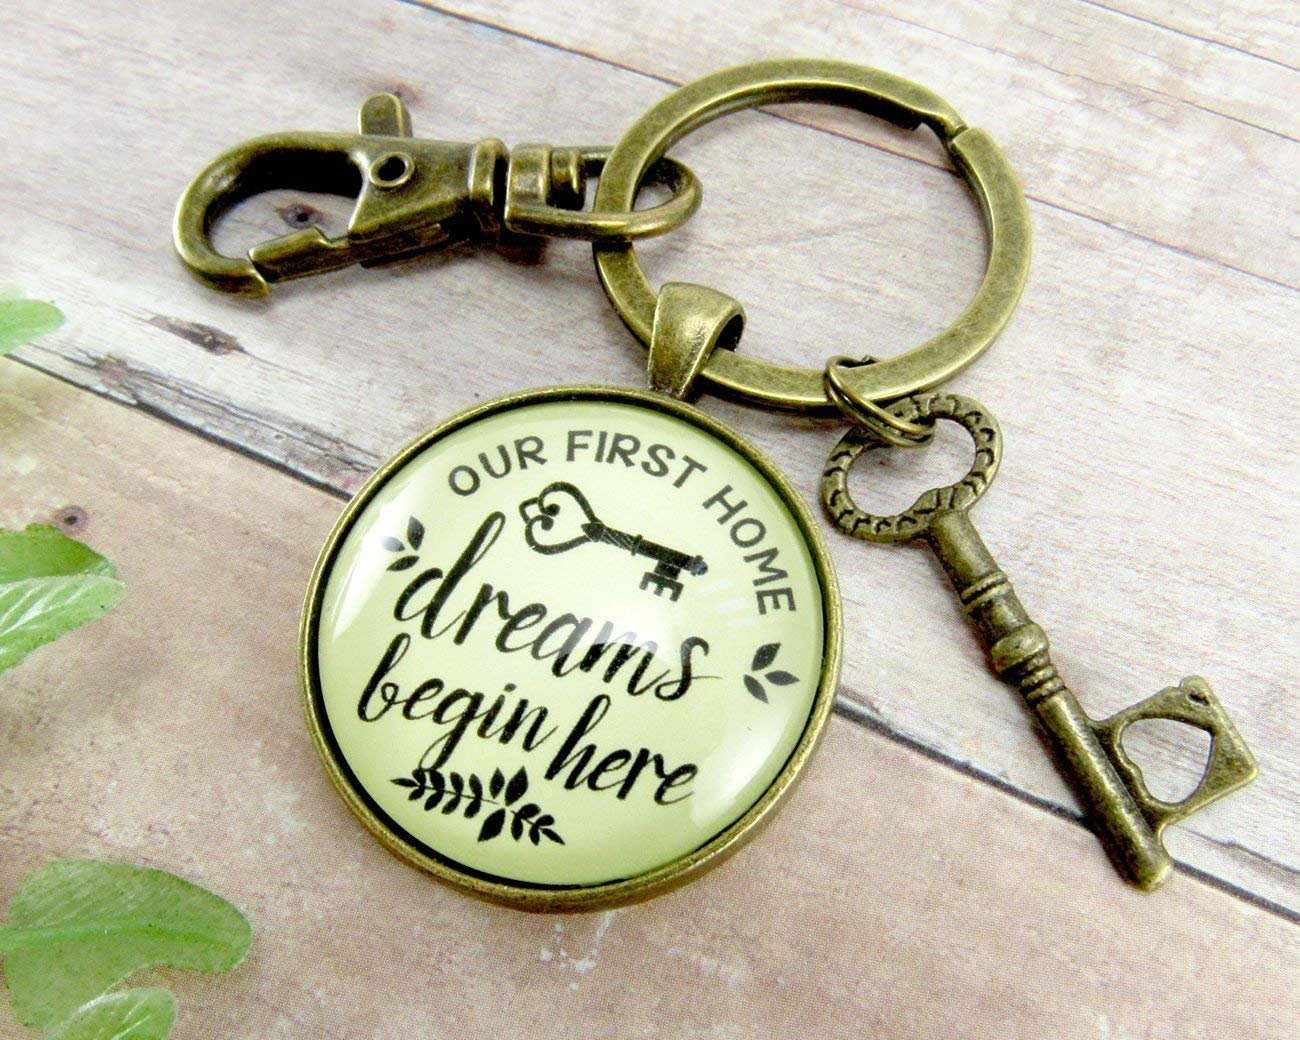 My First Home Keychain Dreams Begin Here Homeowner Home Buyers Gift Vintage Hipster Style Glass Pendant Key Charm